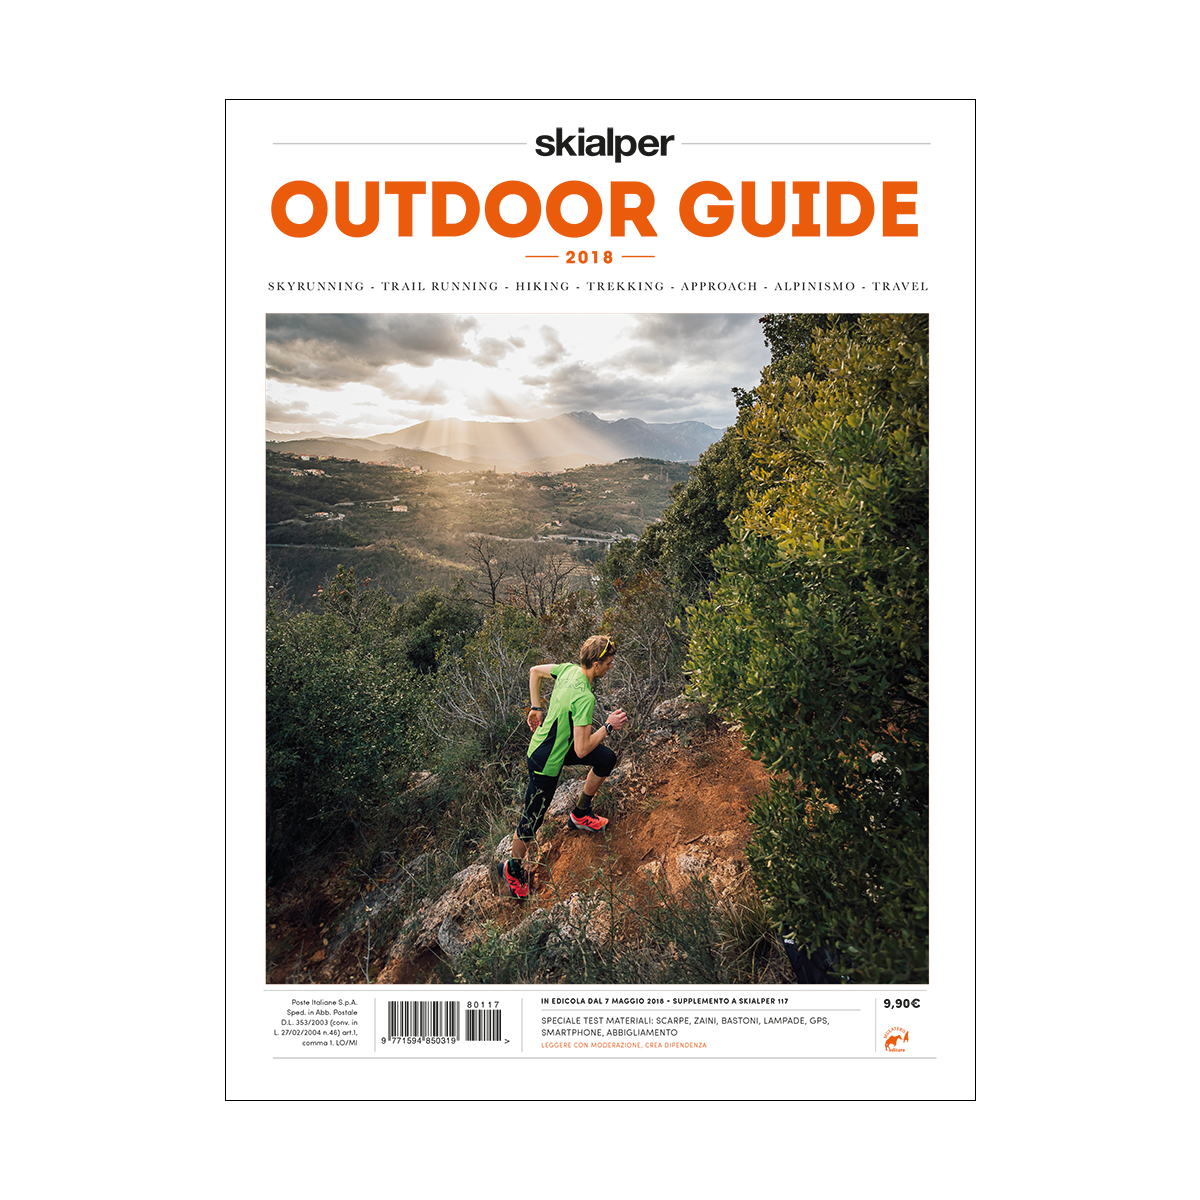 OUTDOOR GUIDE 2018